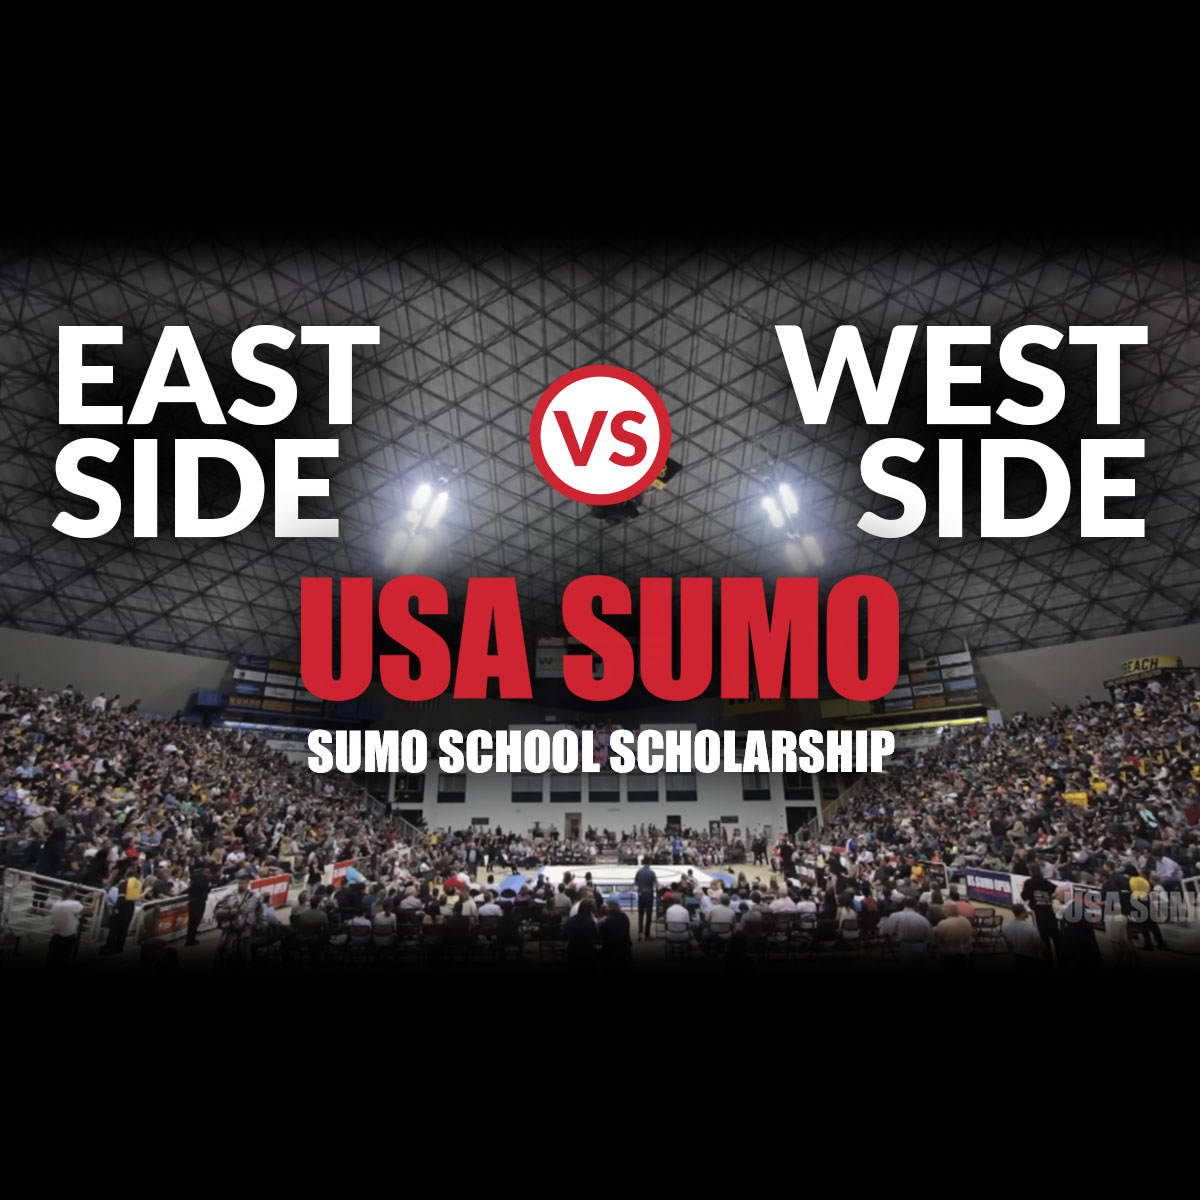 Scholarships for American Sumo Wrestlers